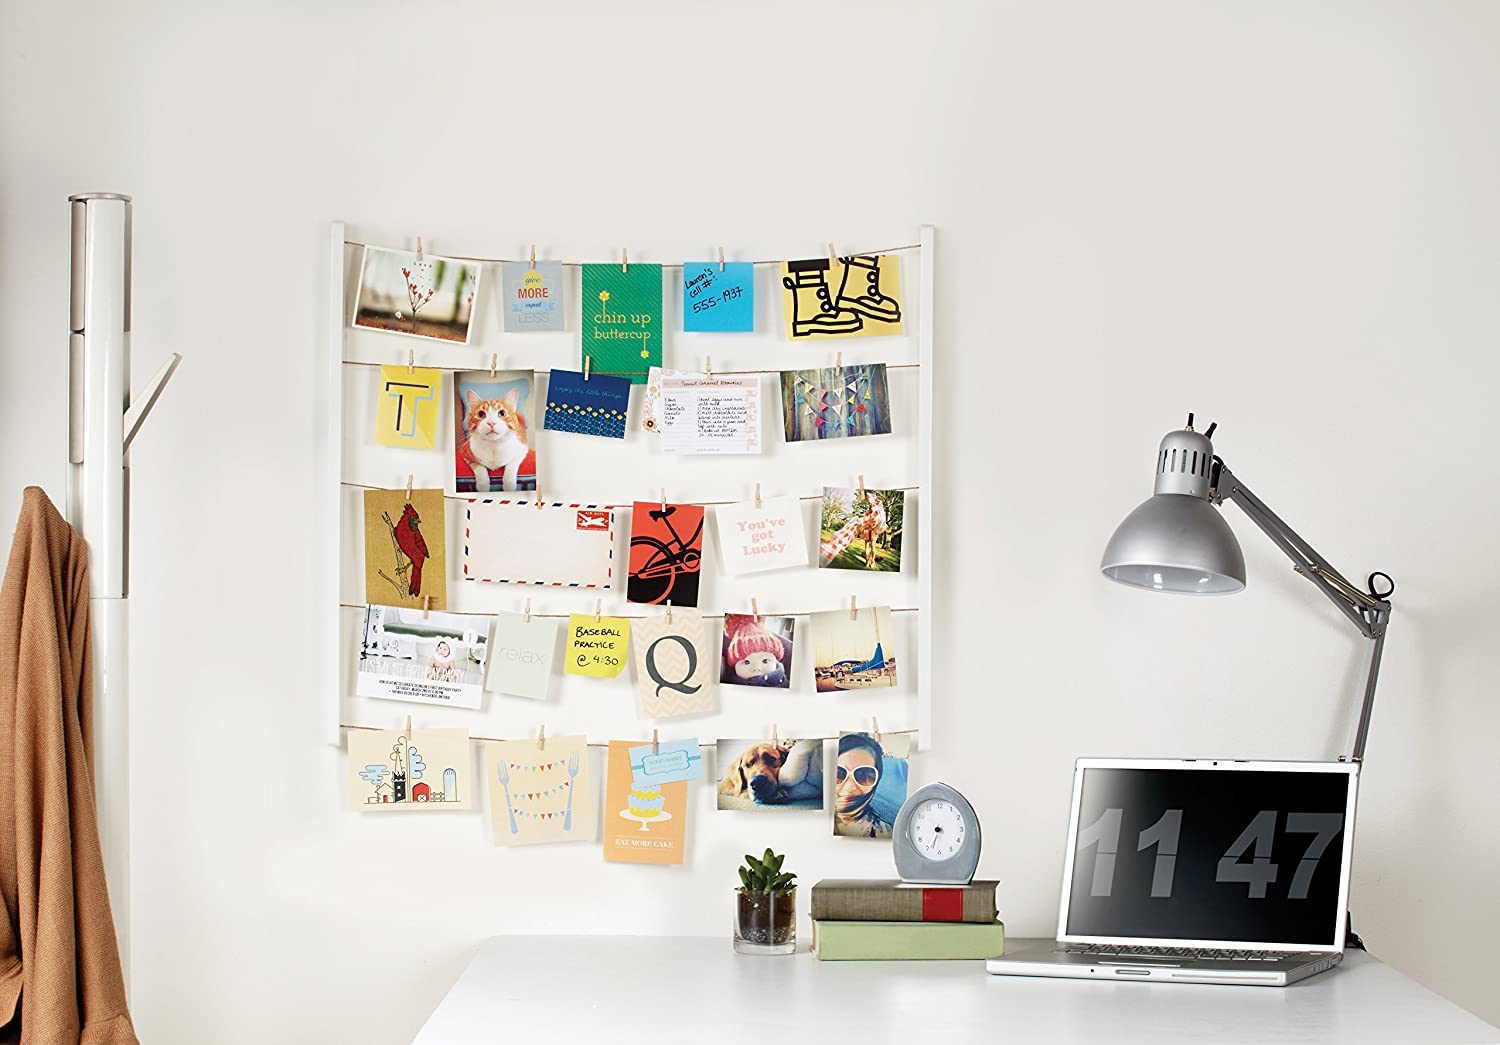 Amazon.com - Umbra Hangit Photo Display - DIY Picture Frames Collage Set  Includes Picture Hanging Wire Twine Cords, Natural Wood Wall Mounts and  Clothespin ...